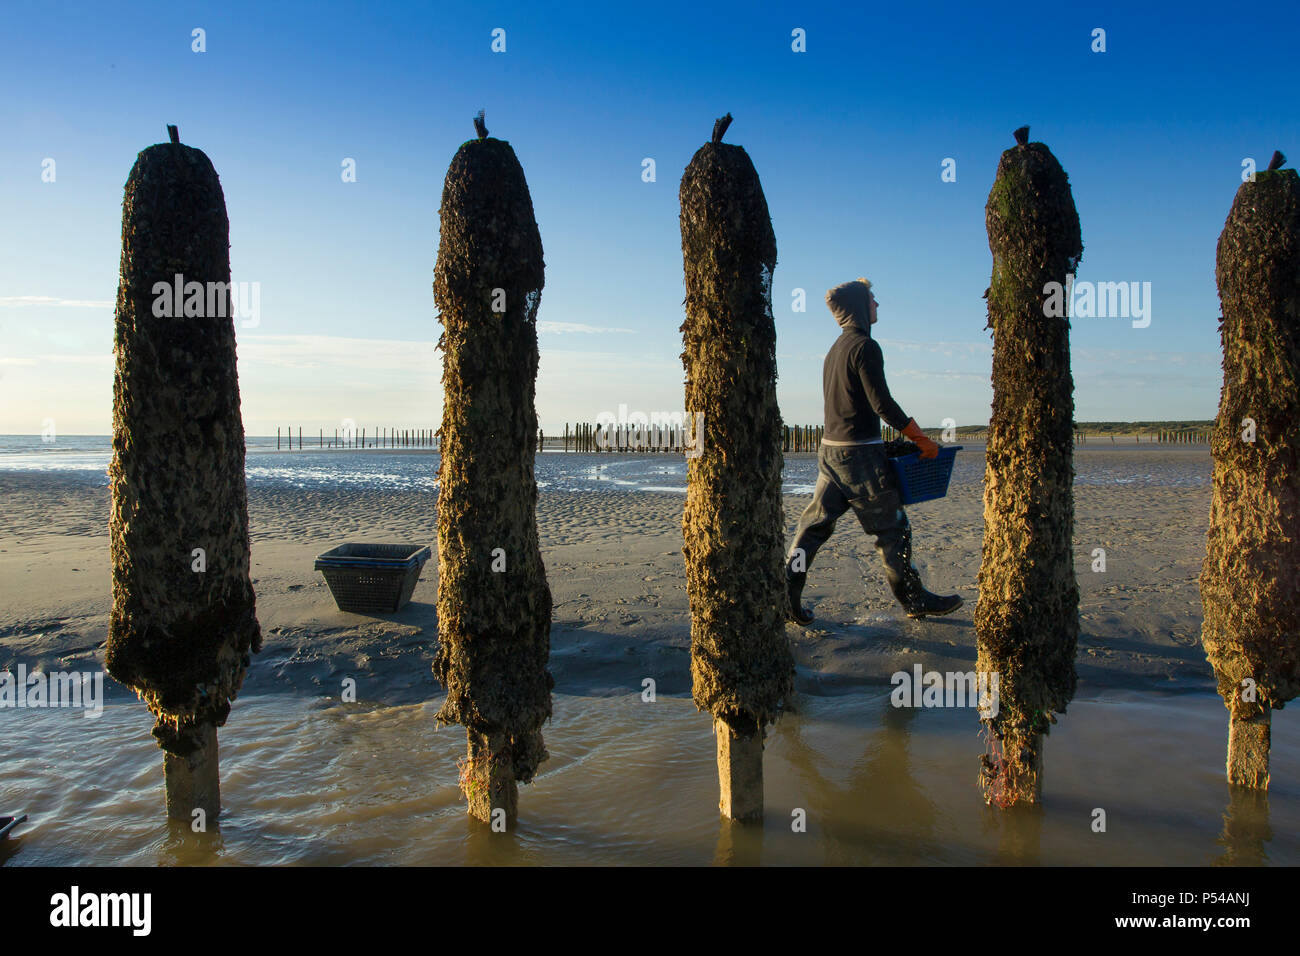 Mussel breeding in the Pas-de-Calais department (northern France). Jean-Etienne Valle, mussel breeder in Dannes. Farmed mussels - Stock Image